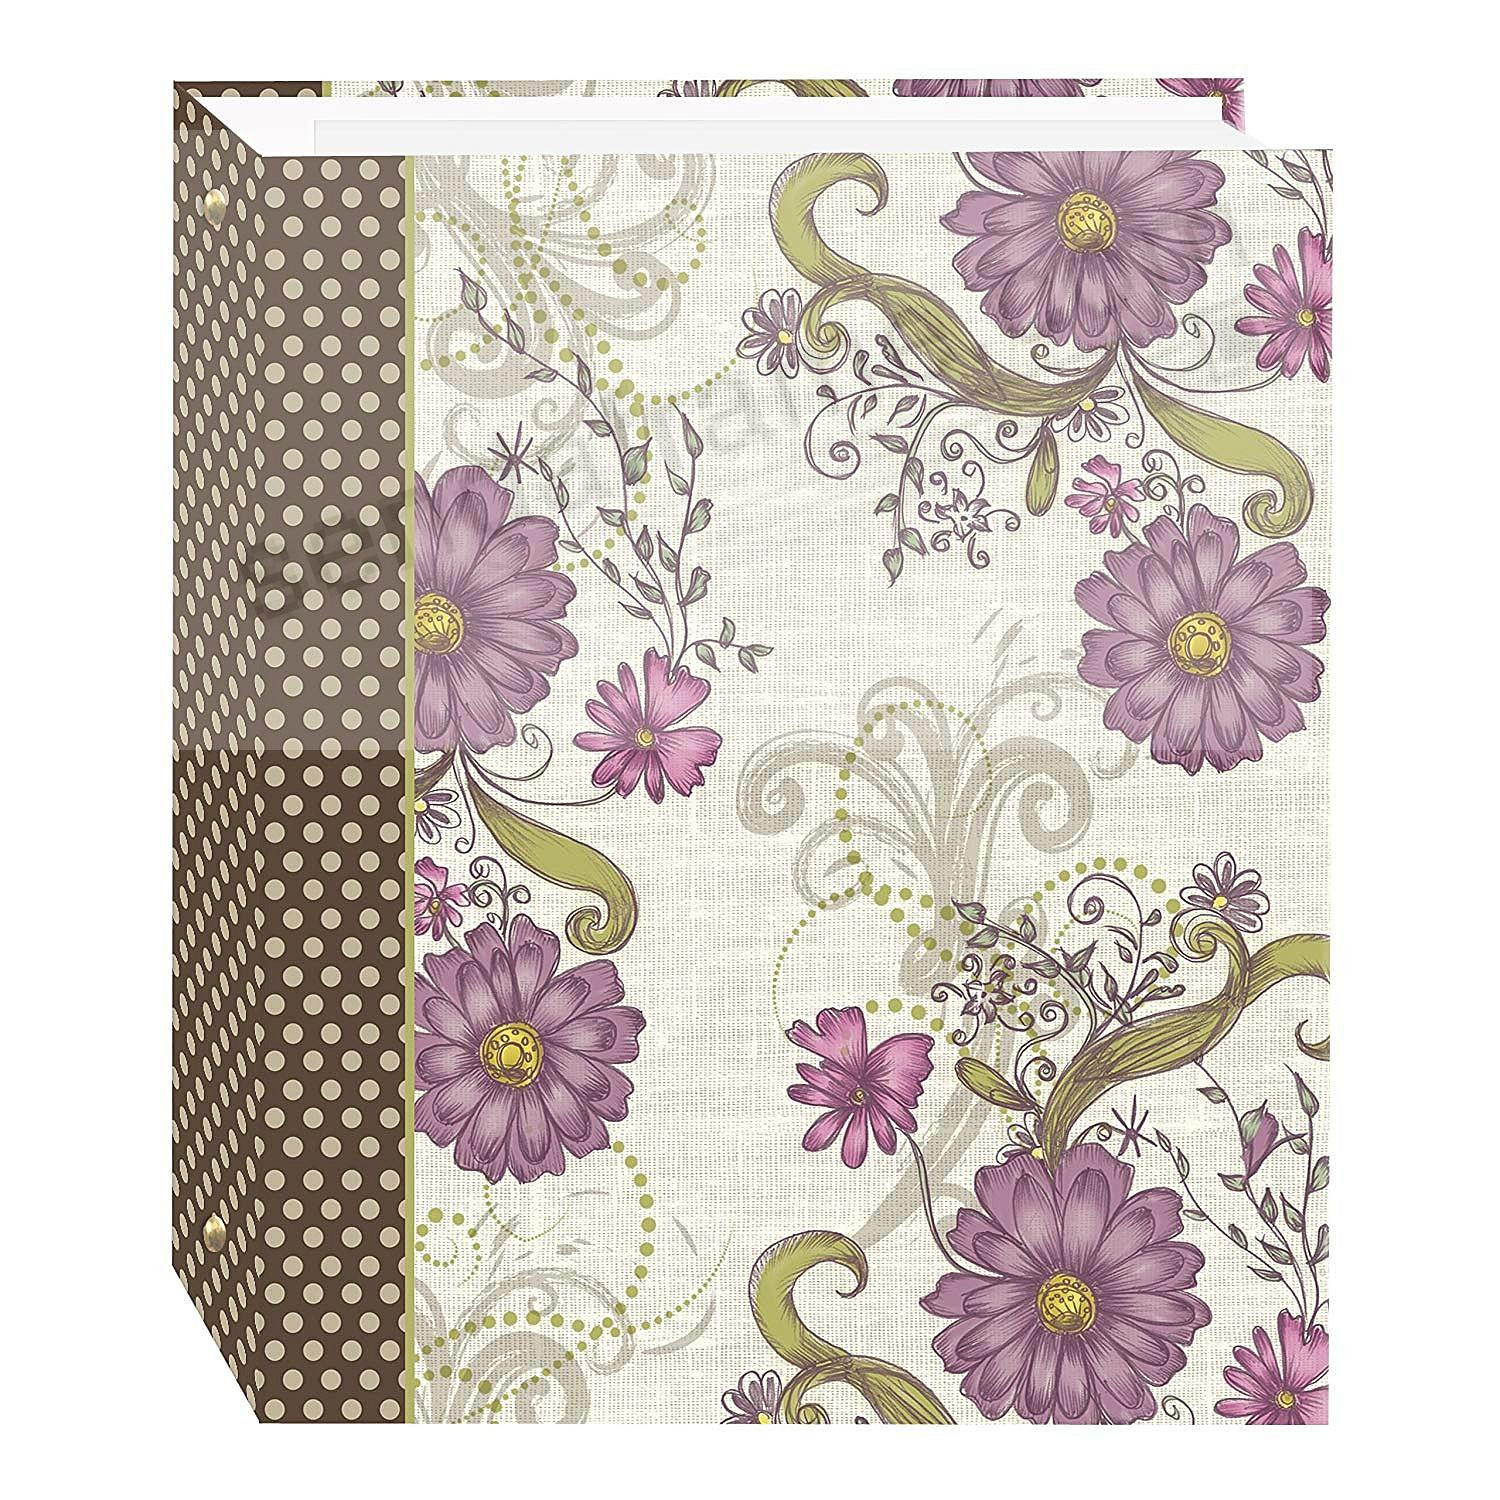 BERRY BLOSSOM Design 3-ring album<br>w/EZ-stick magnetic pages